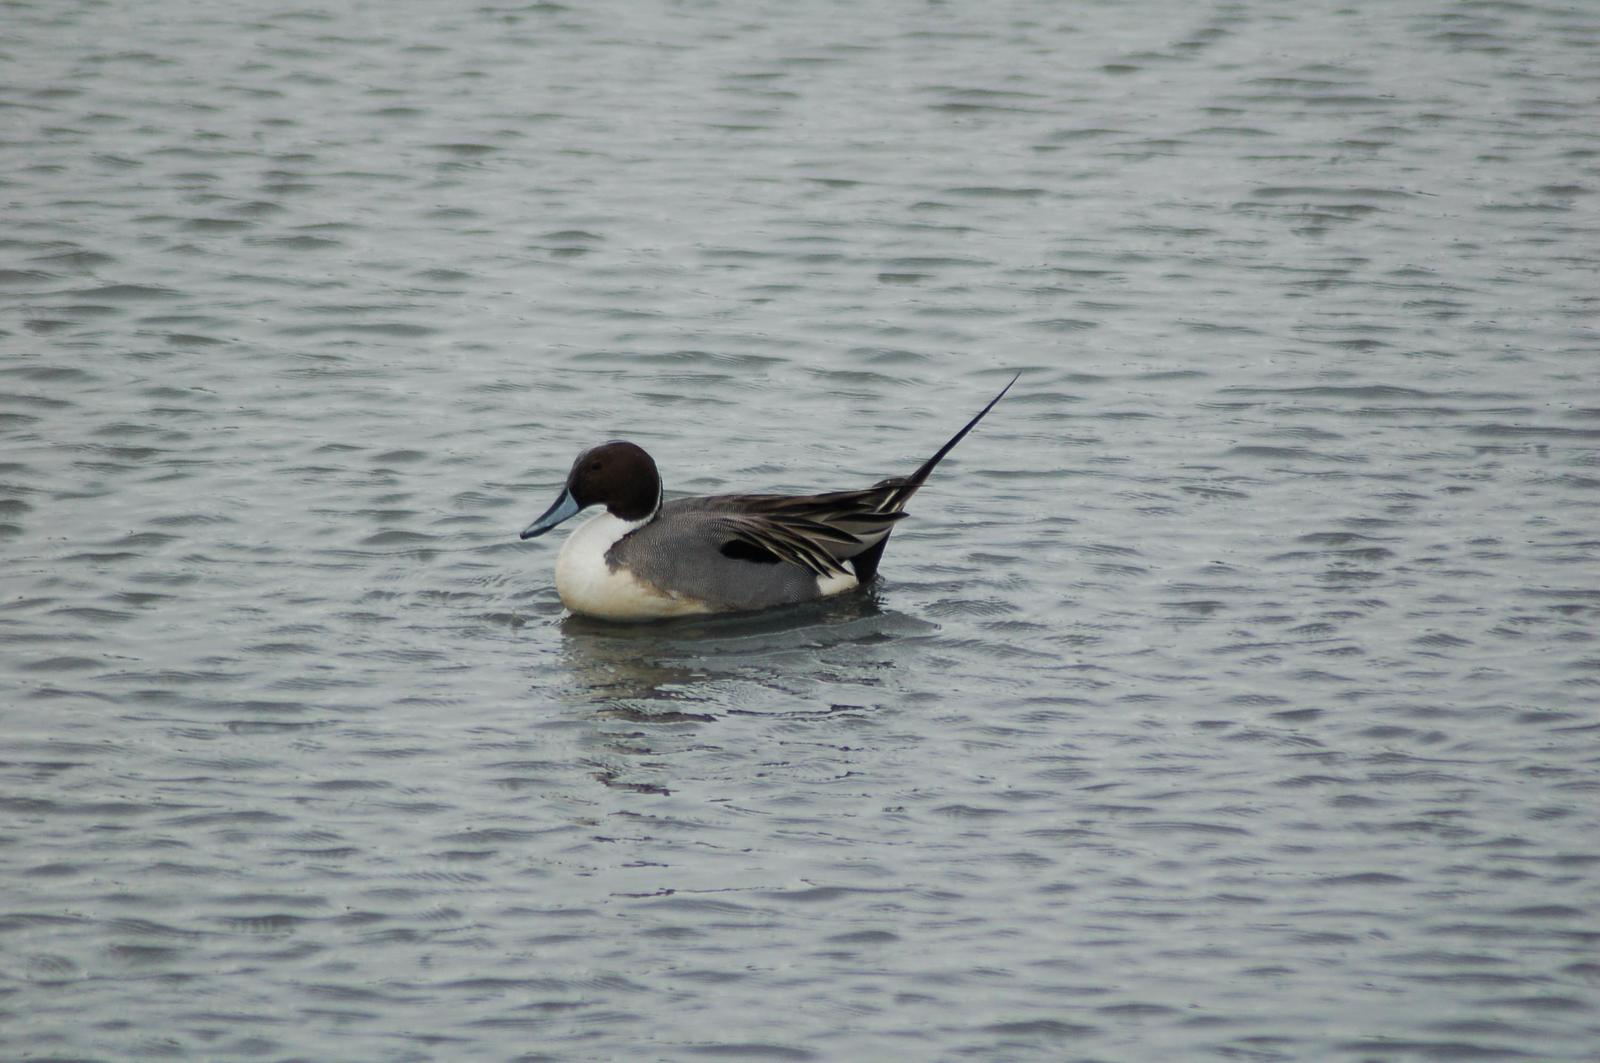 Northern Pintail Photo by Ken Shawcroft